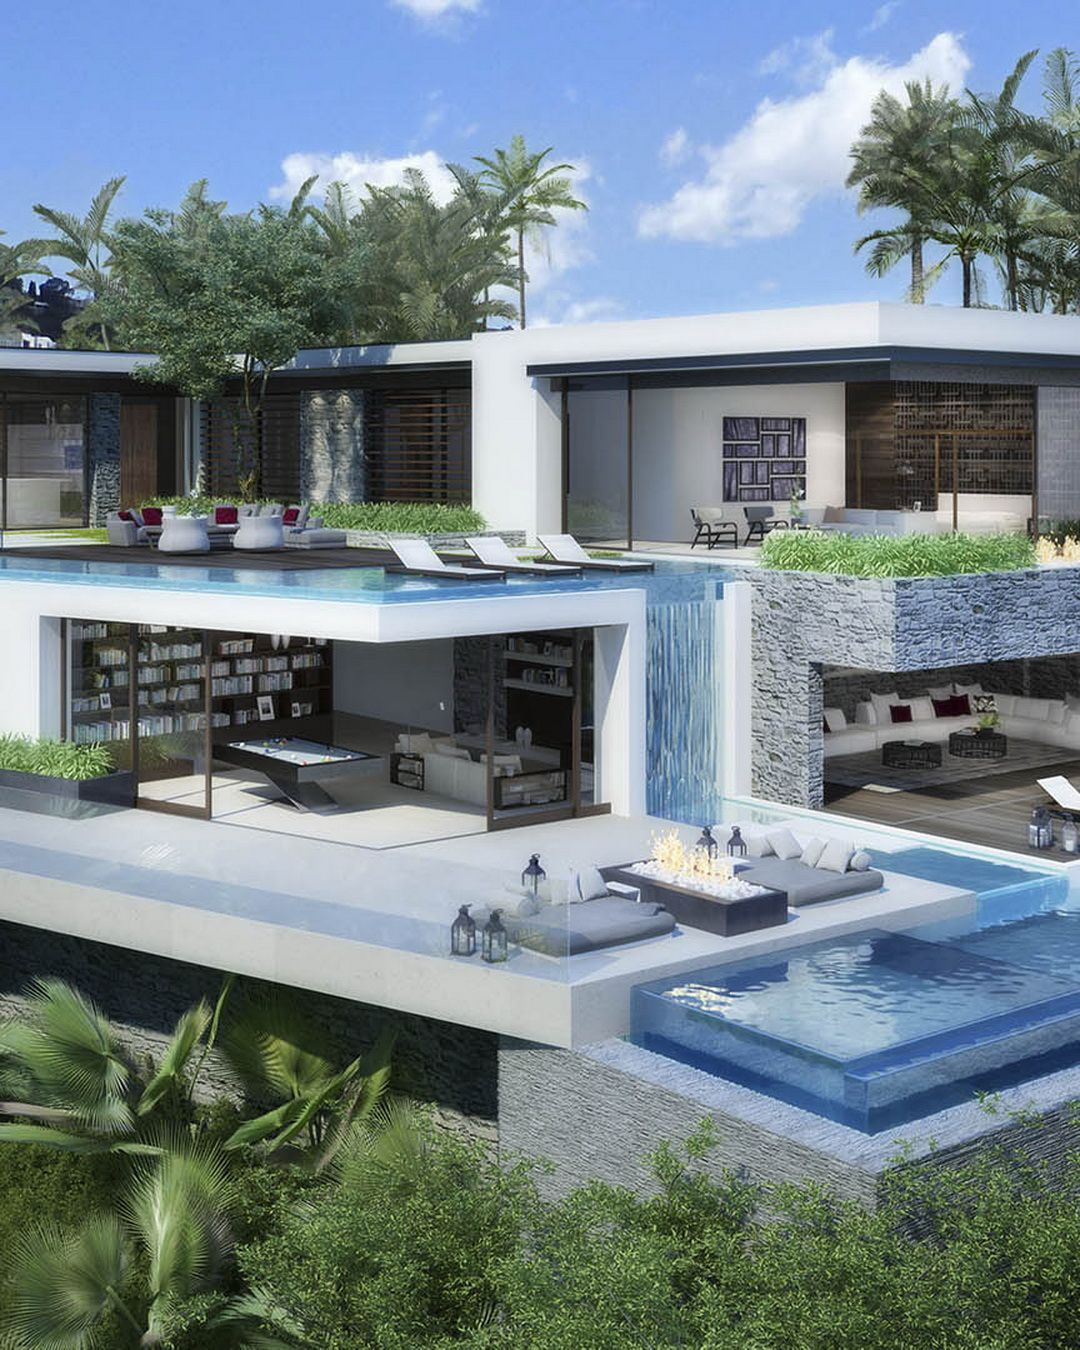 Luxury House Plans With Pools: 9380 Sierra Mar Dr., Hollywood Hills. Price: $19,000,000